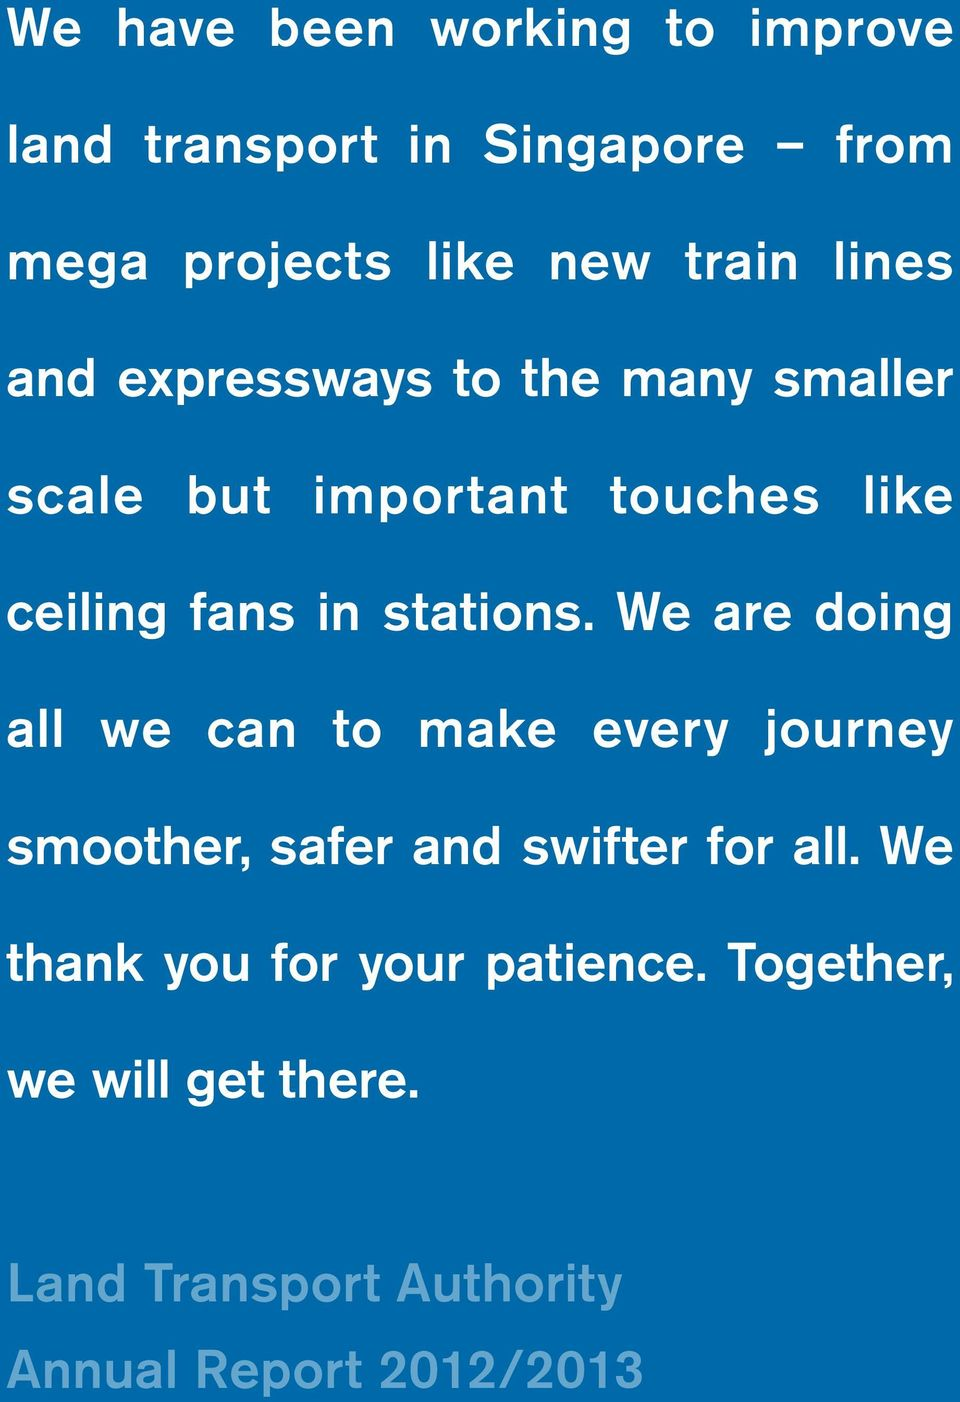 stations. We are doing all we can to make every journey smoother, safer and swifter for all.